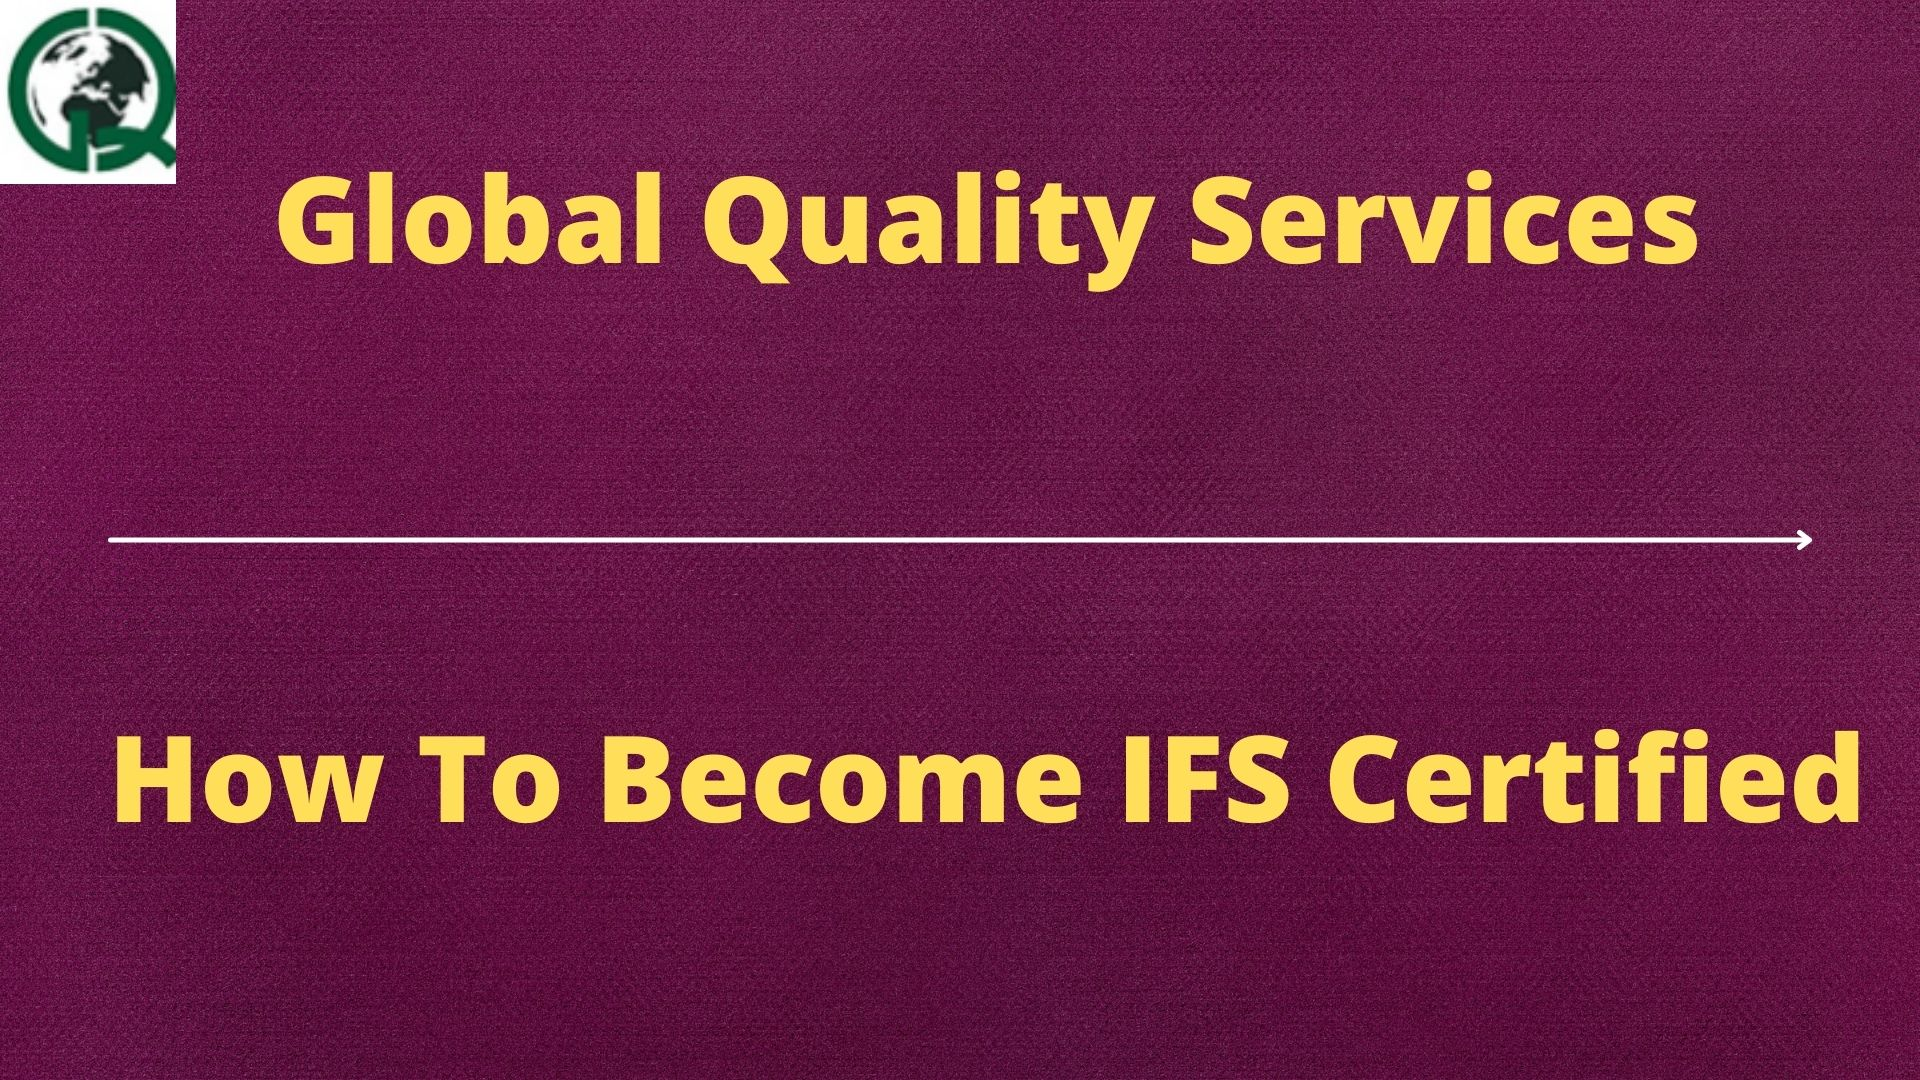 HOW TO BECOME IFS CERTIFIED